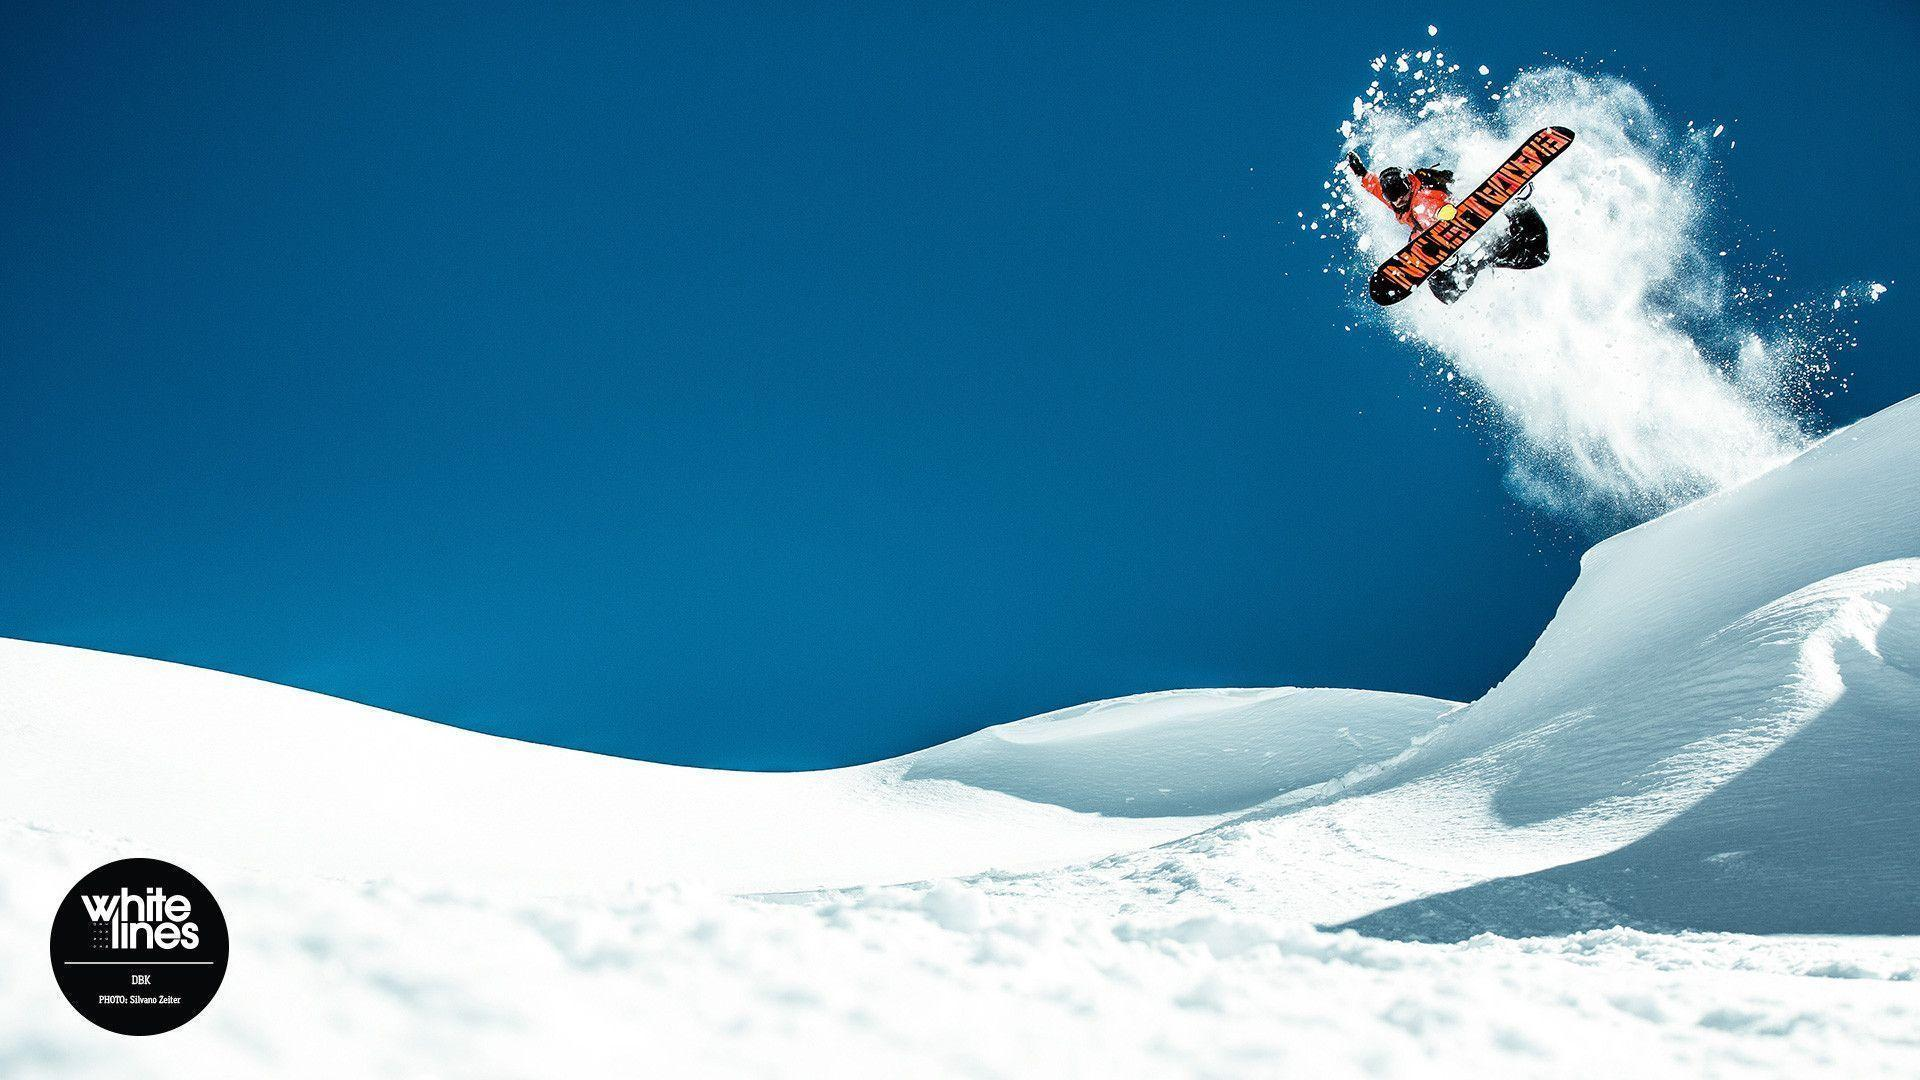 snowboard outdoor wallpaper desktop - photo #38